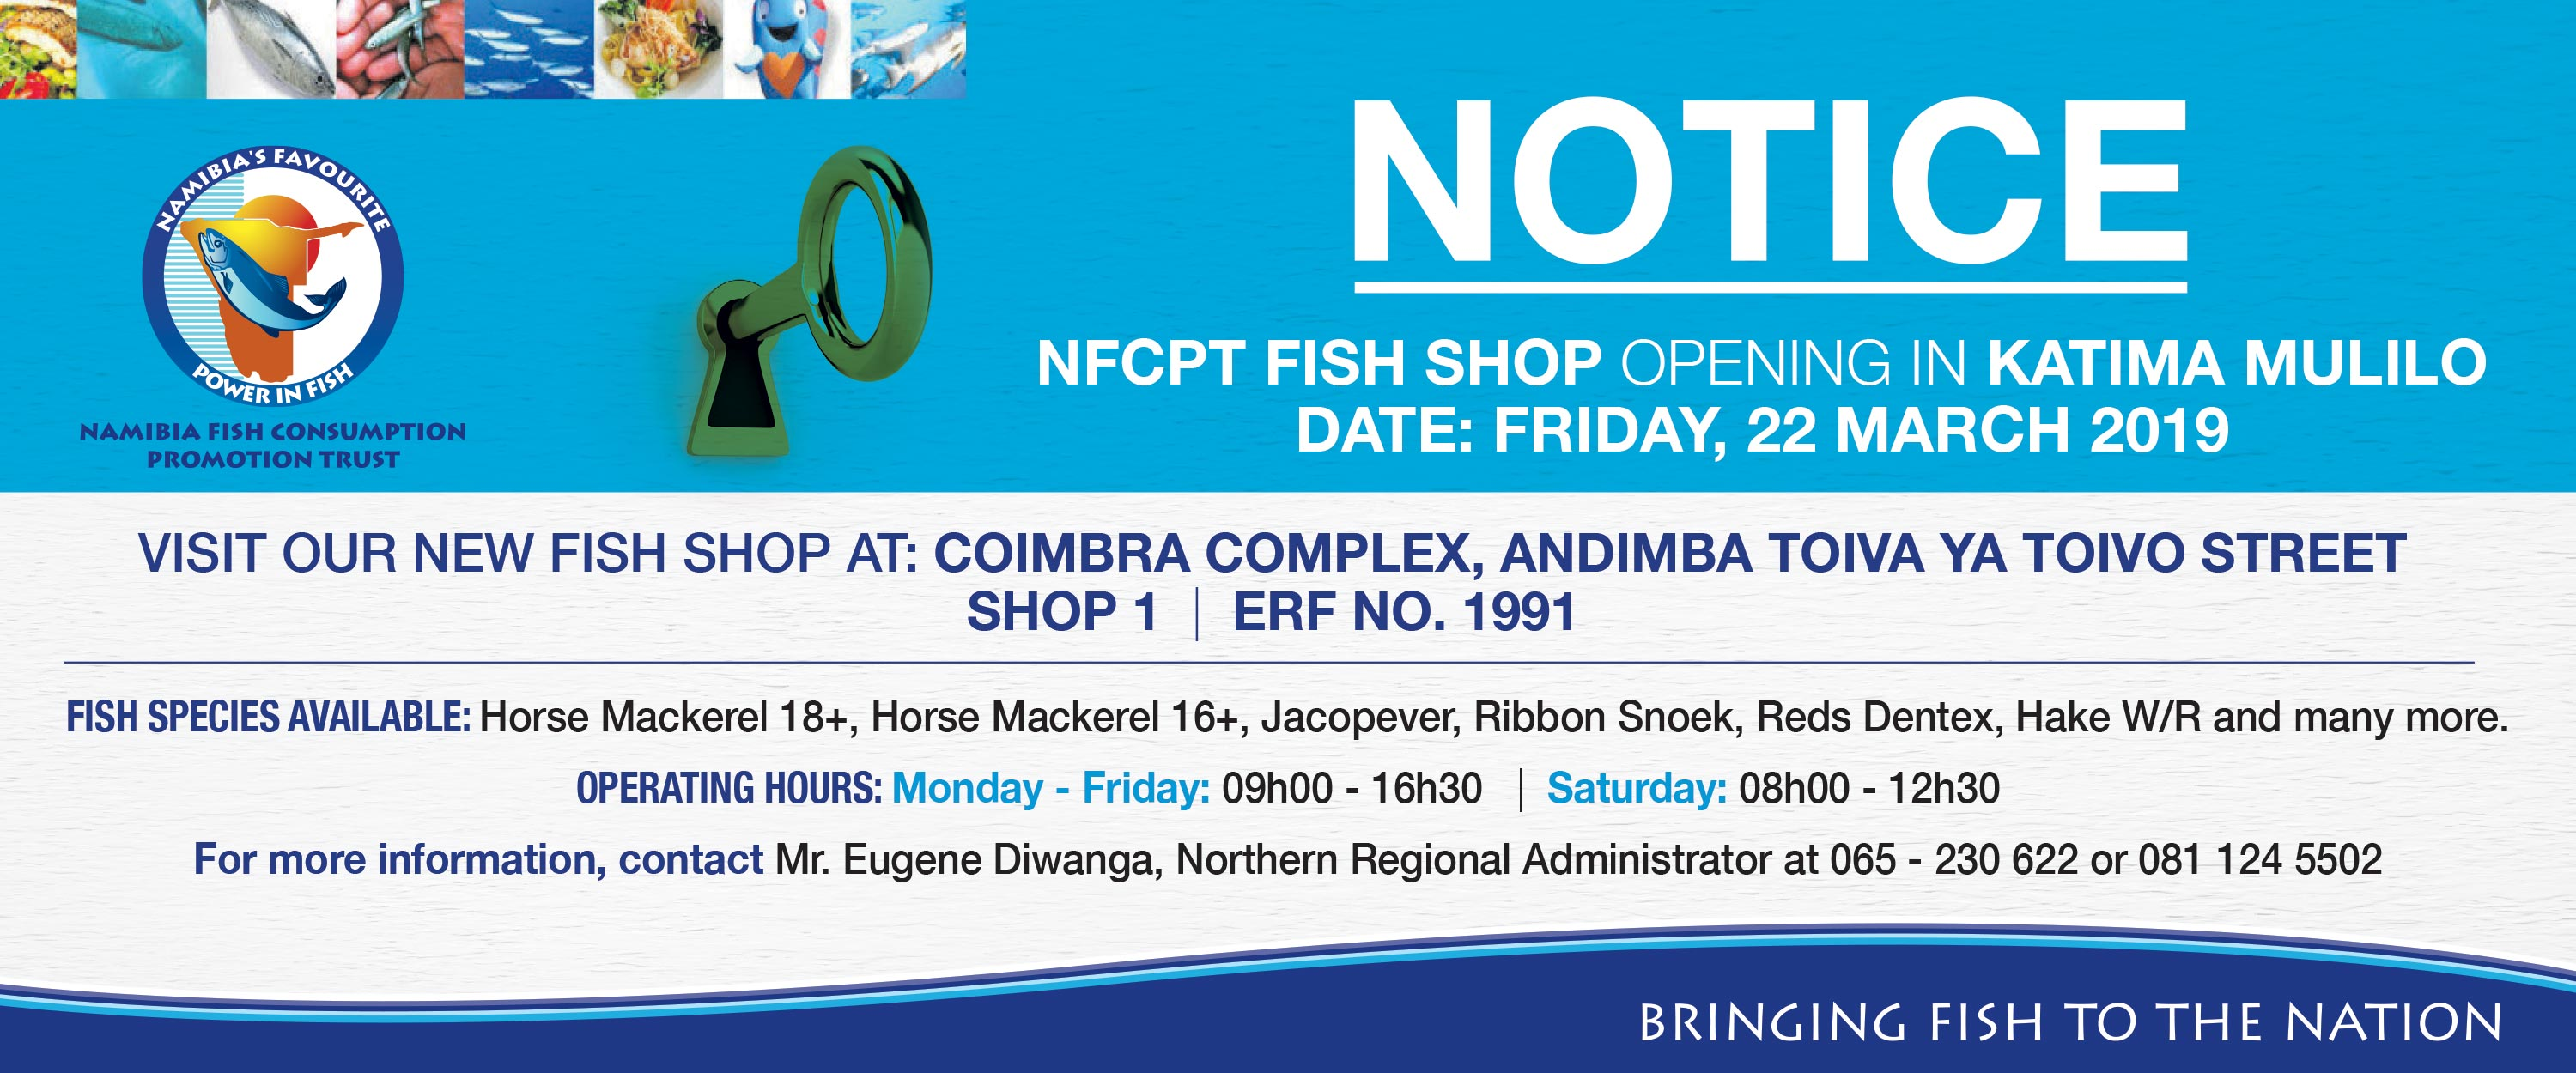 Namibia Fish Consumption Promotion Trust